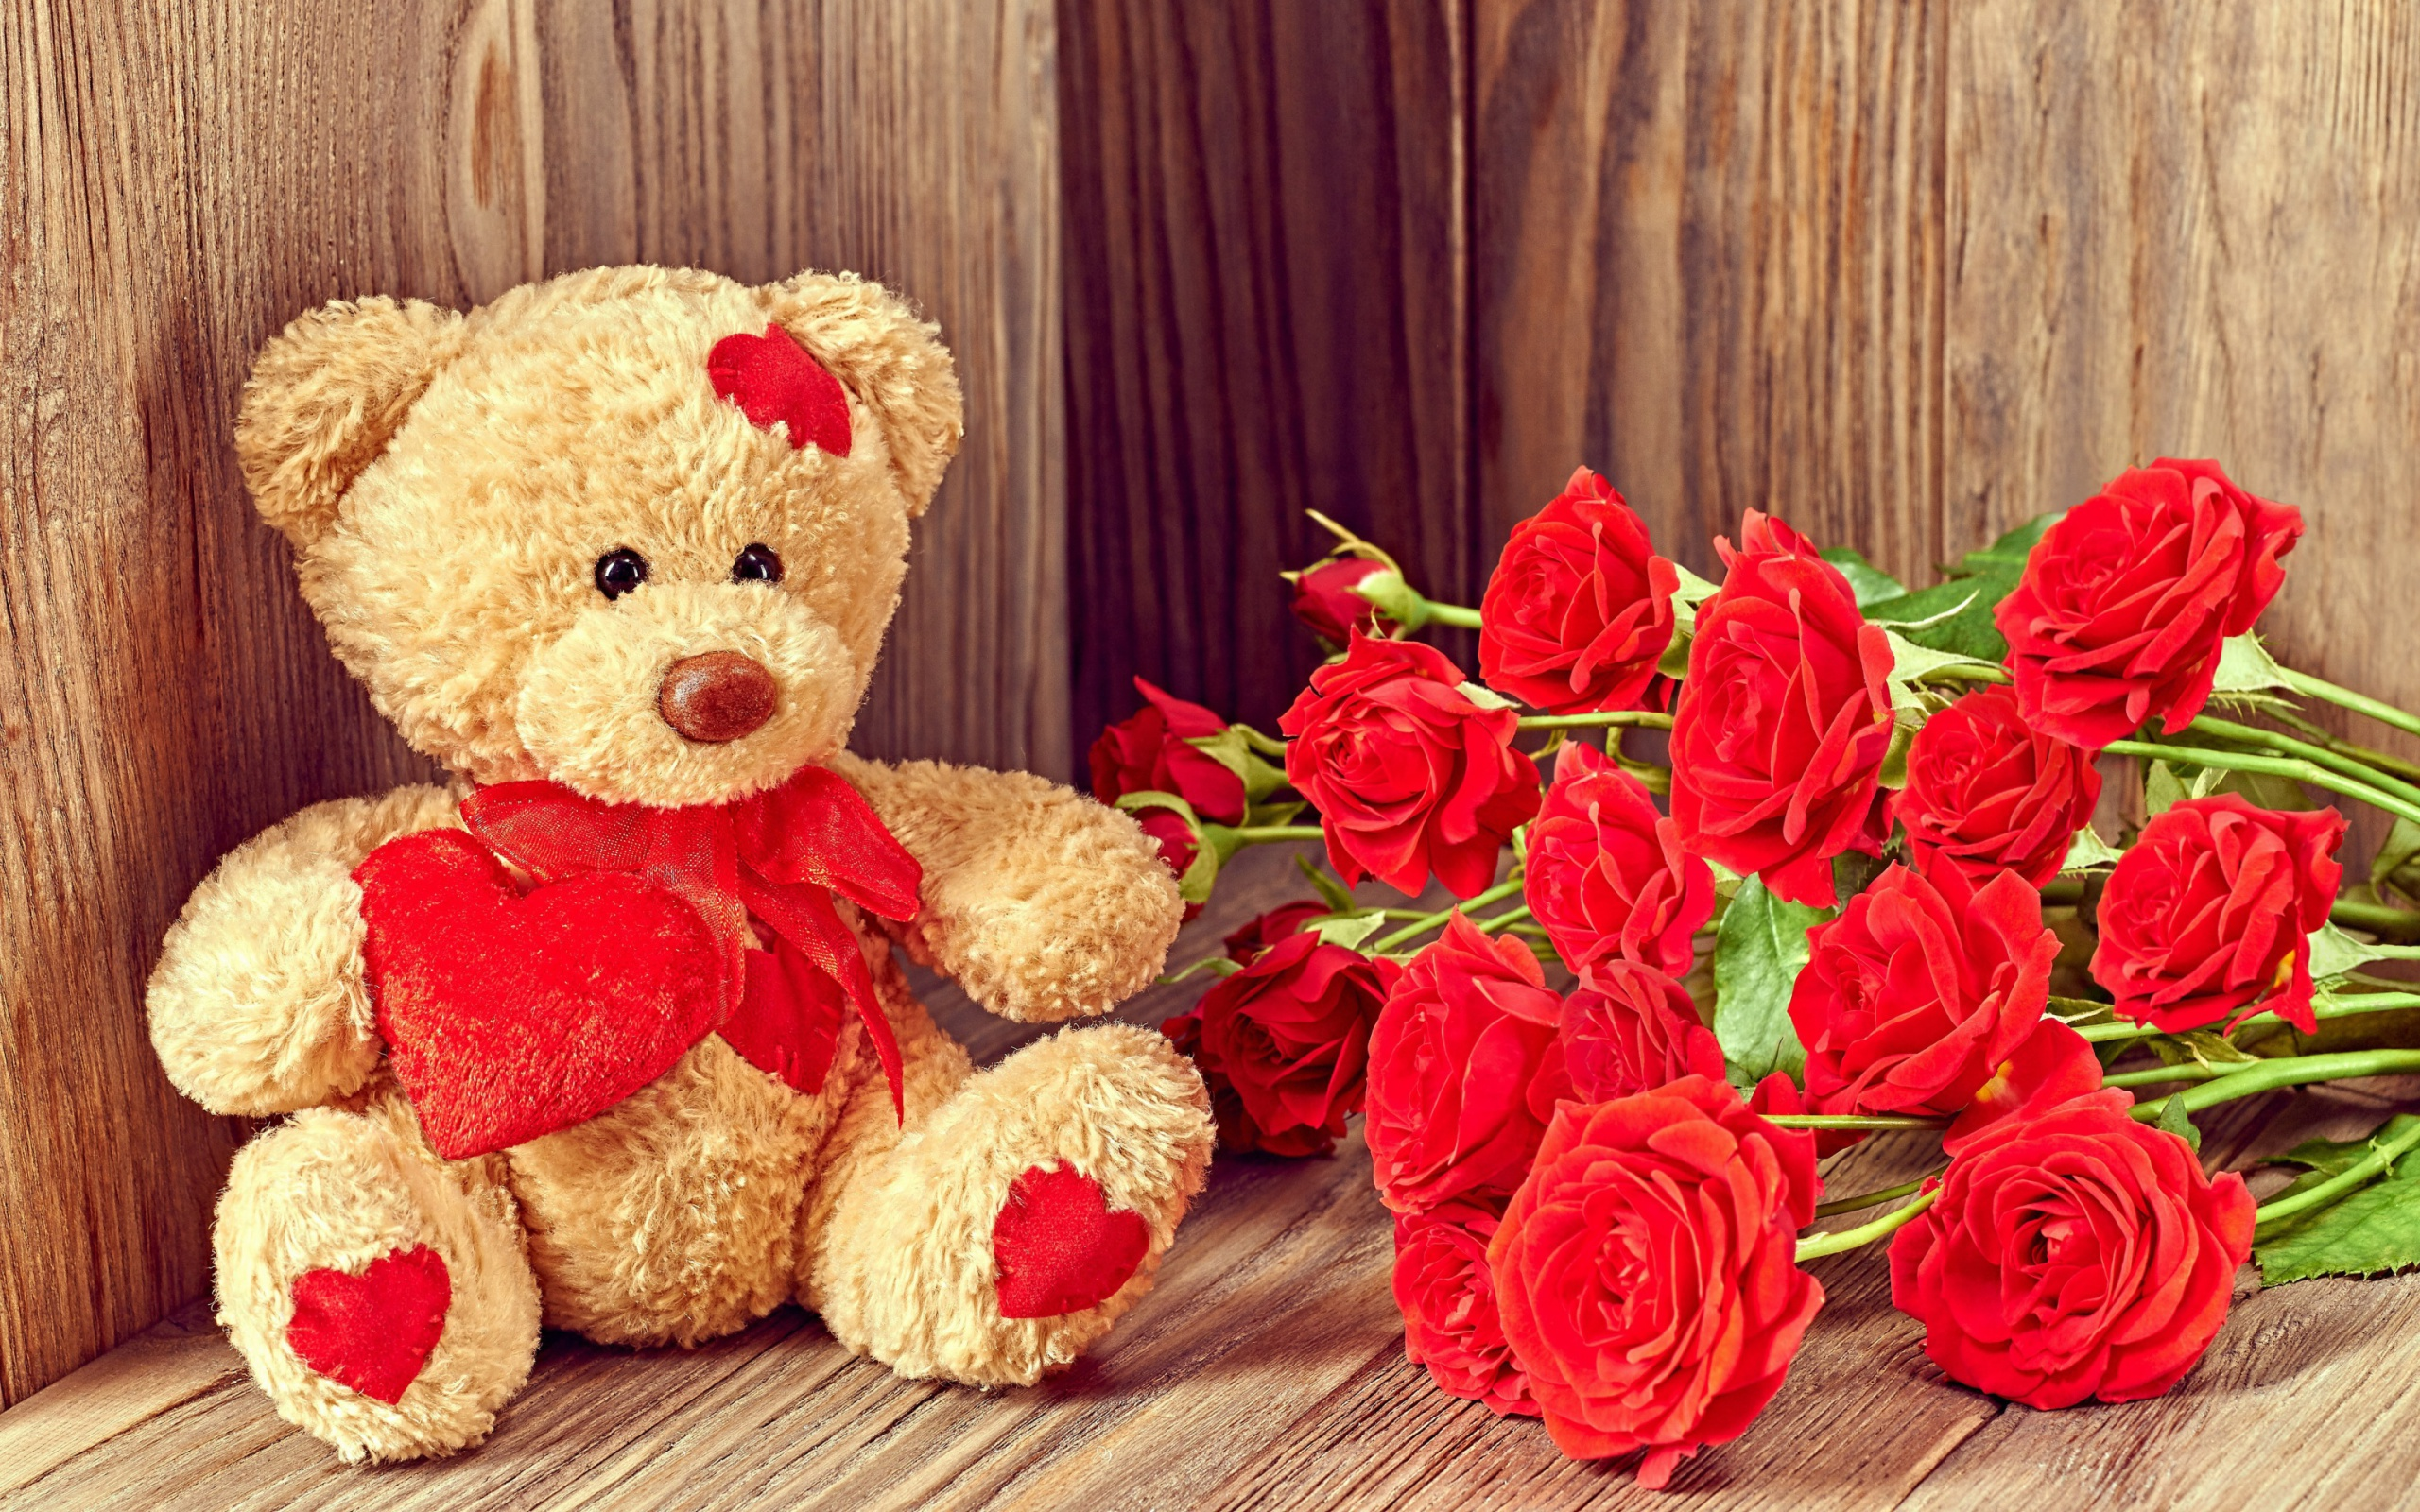 Brodwn Teddy Bear Gift for Saint Valentines Day wallpaper 2560x1600